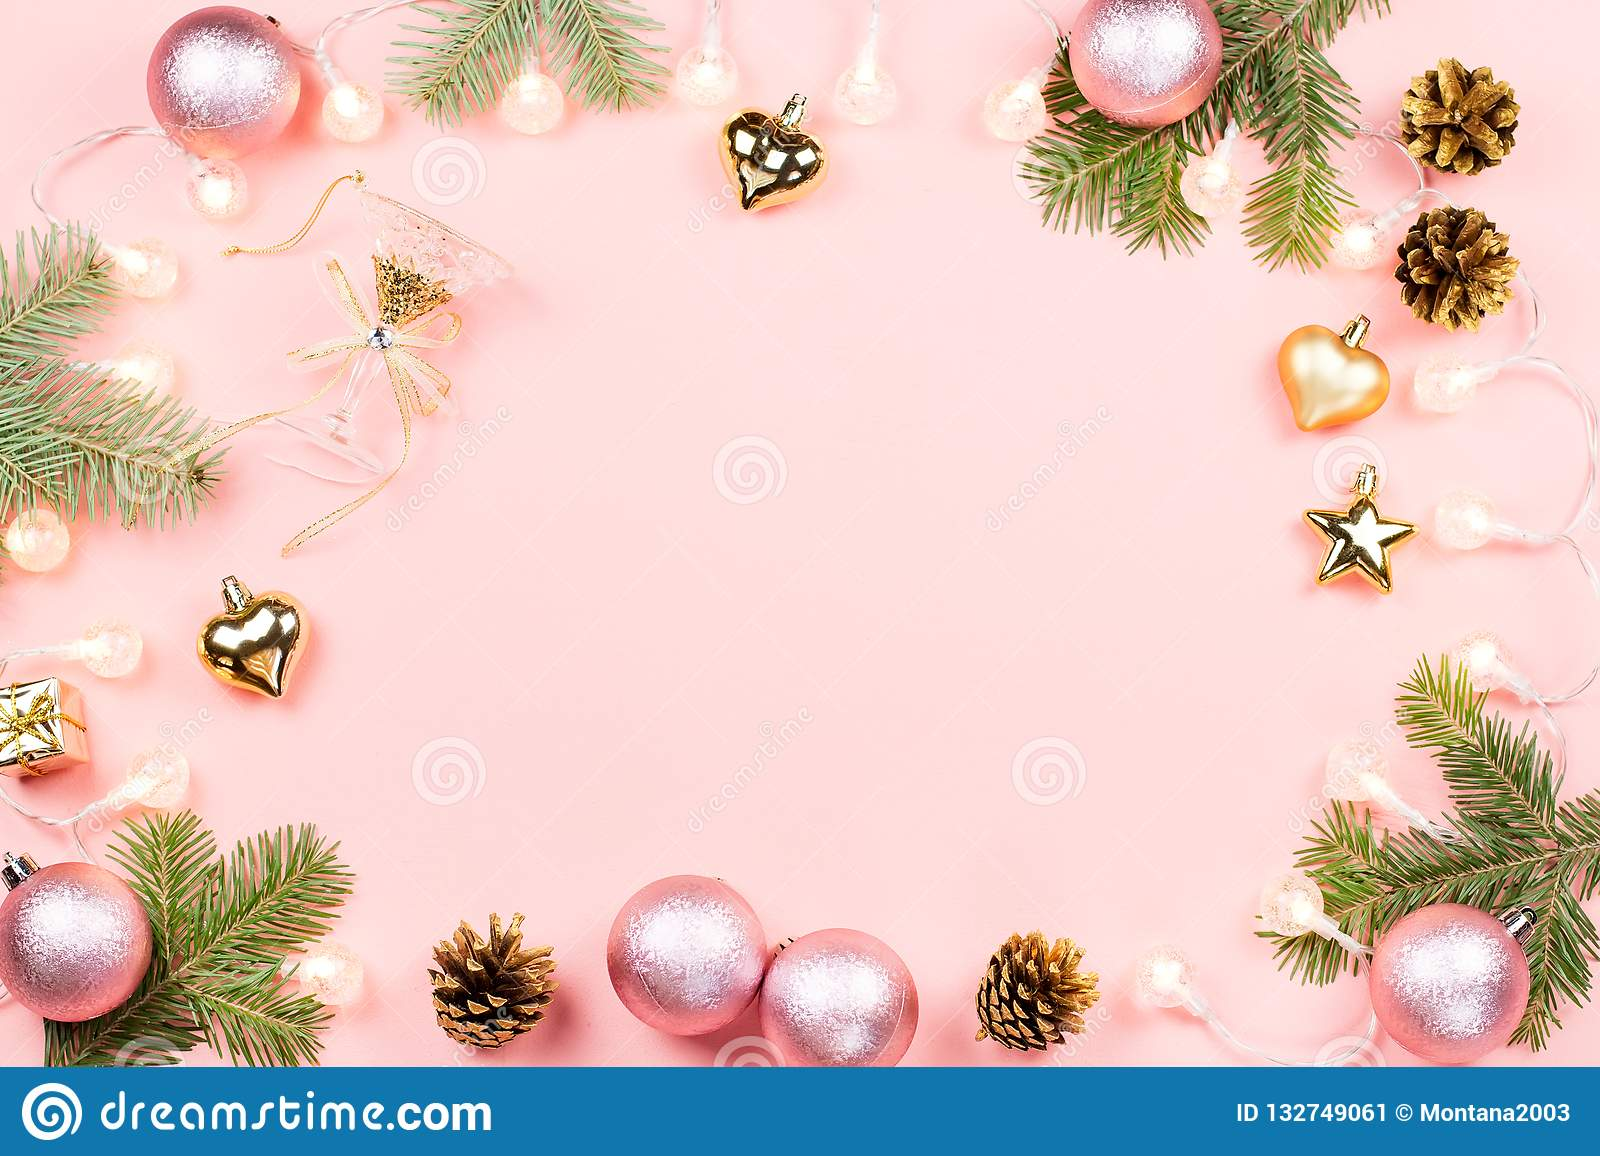 Christmas background with fir branches, lights, pink decorations on pink